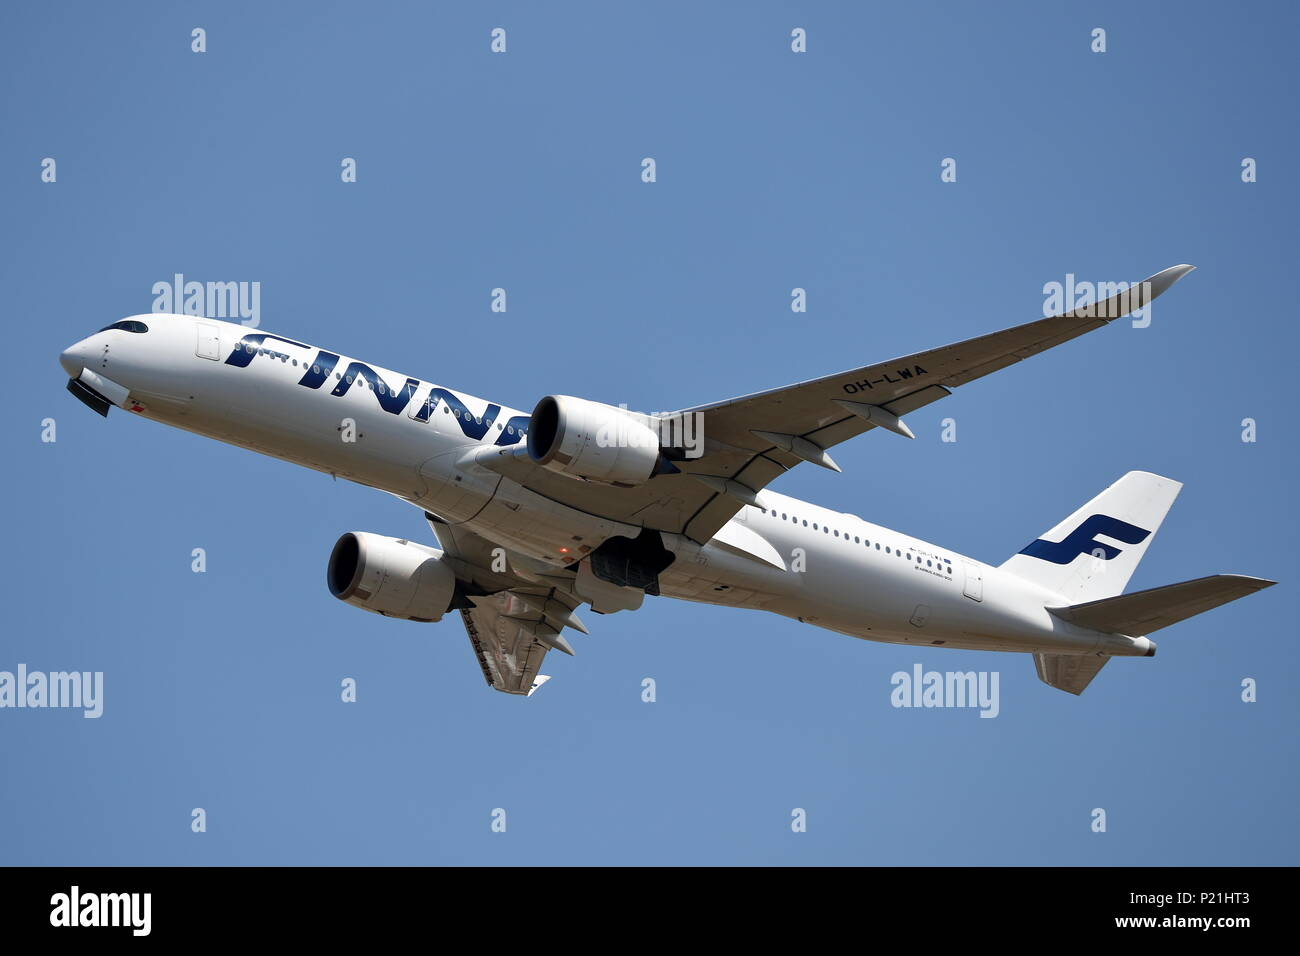 A Finnair Airbus A350-900 OH-LWA takes of from London Heathrow Airport, UK - Stock Image